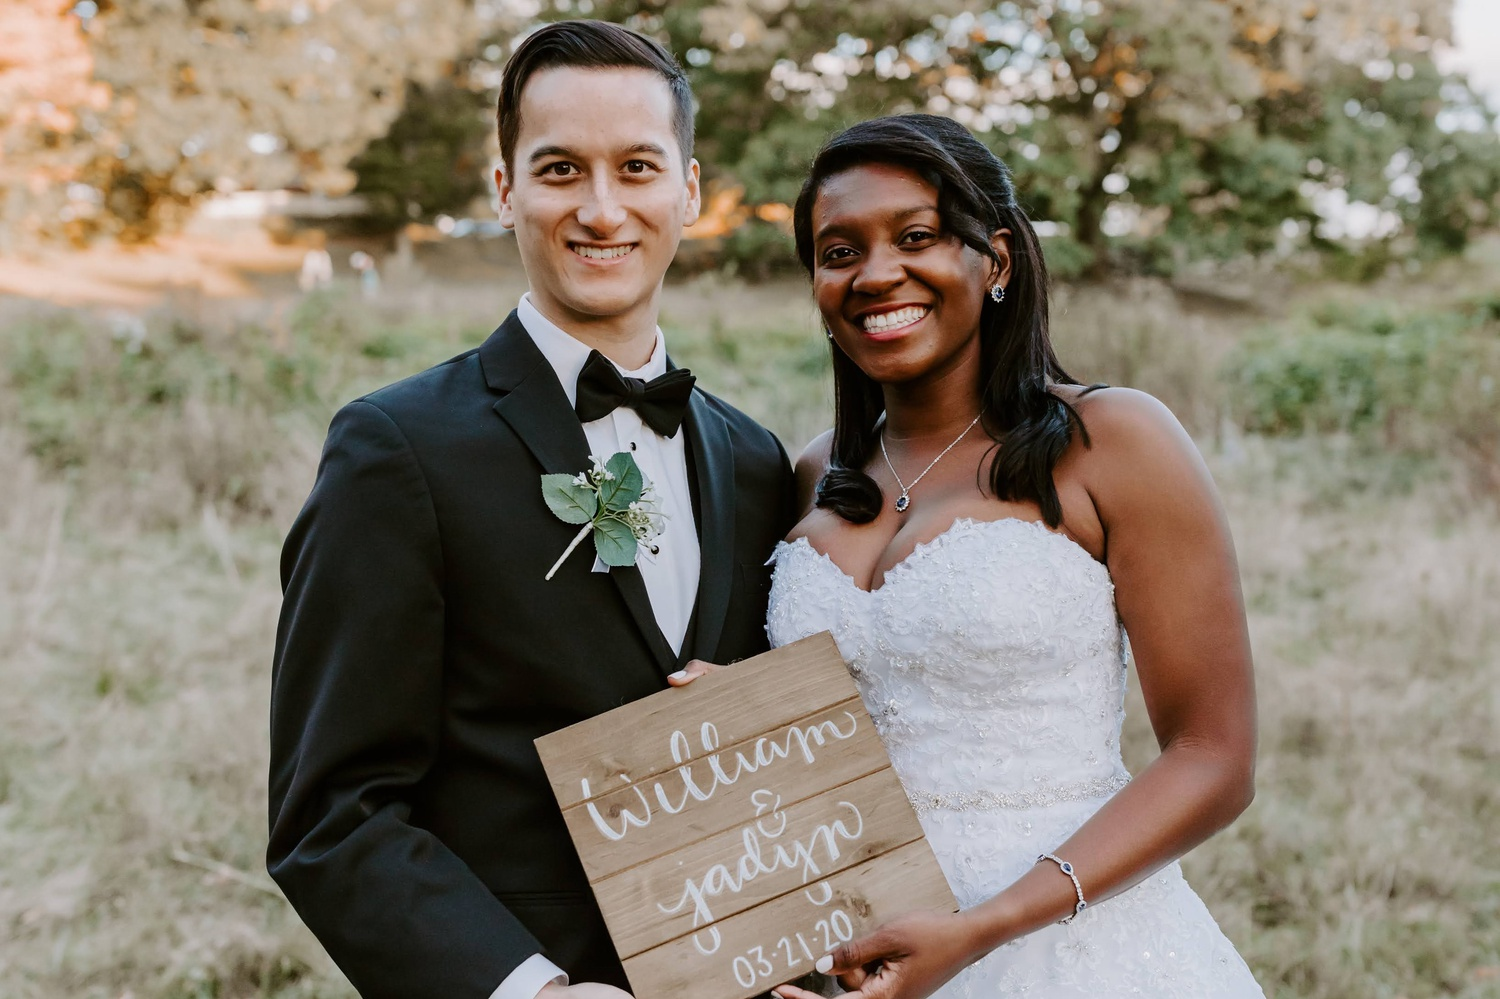 Only 11 days after learning Harvard would require its students to vacate campus, Jadyn K. Bryden '21 orchestrated her own wedding over Zoom.